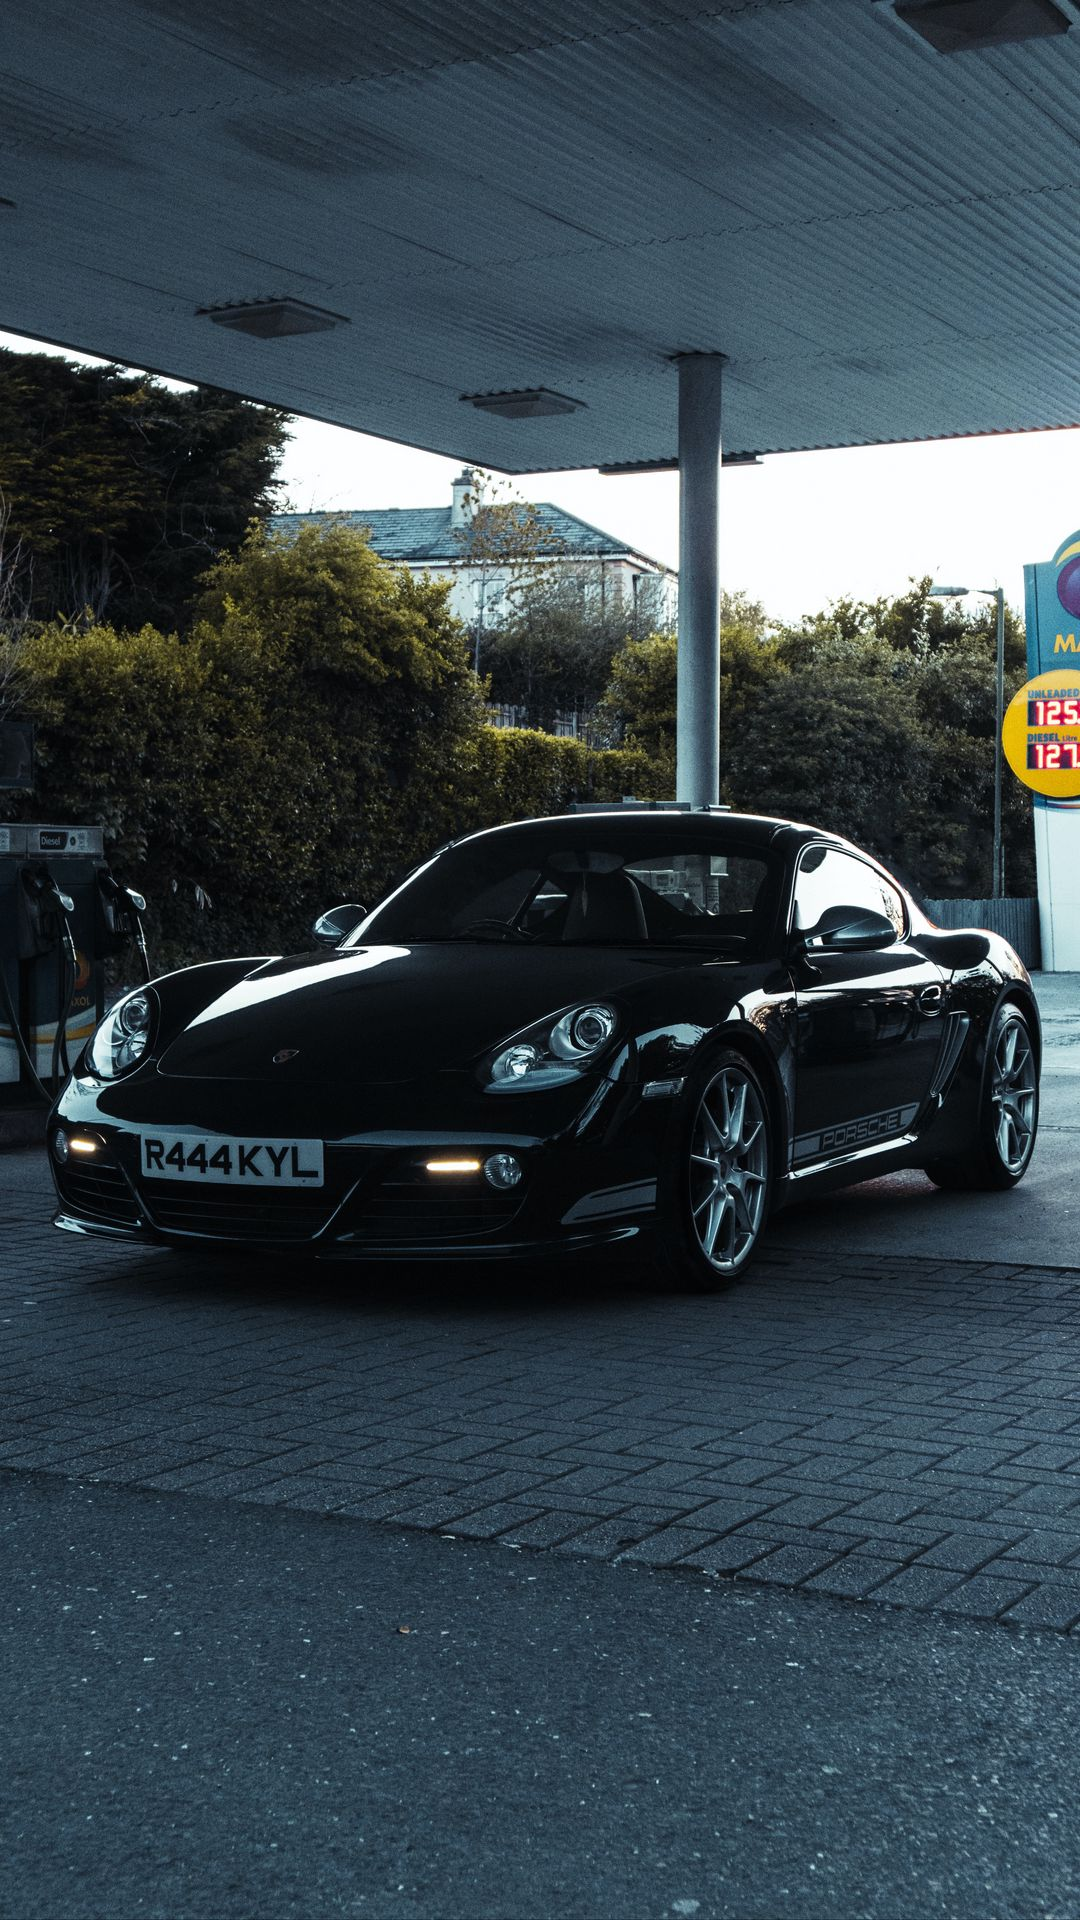 Porsche Car Ultra HD Wallpapers Free Download for Device